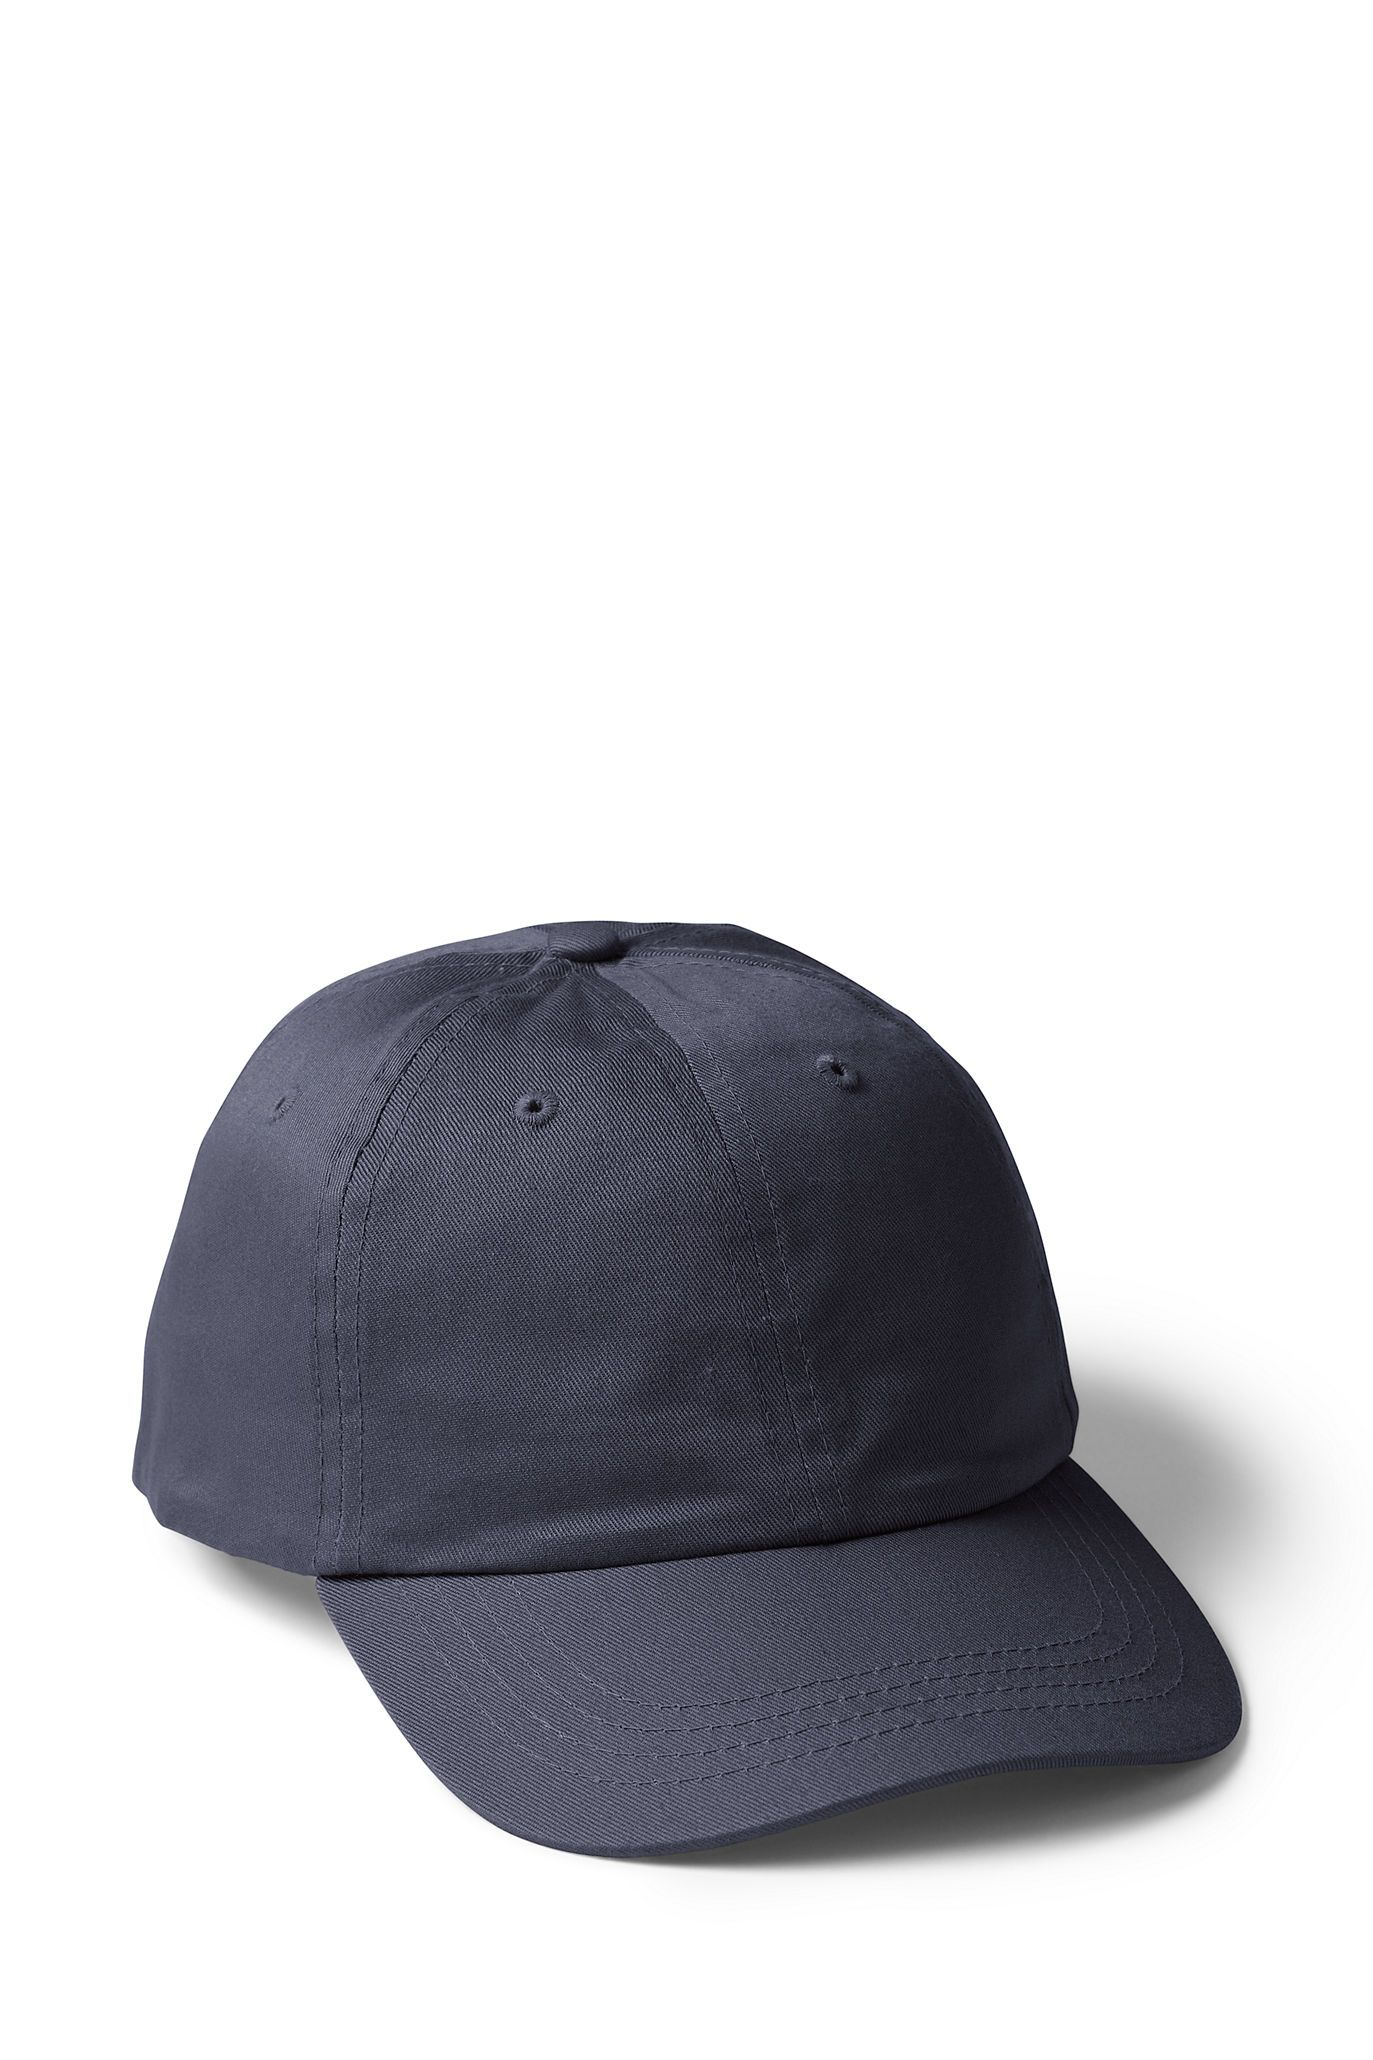 "858182f2015 School Uniform Basic Baseball Cap from Lands  End - for the ""runway ..."